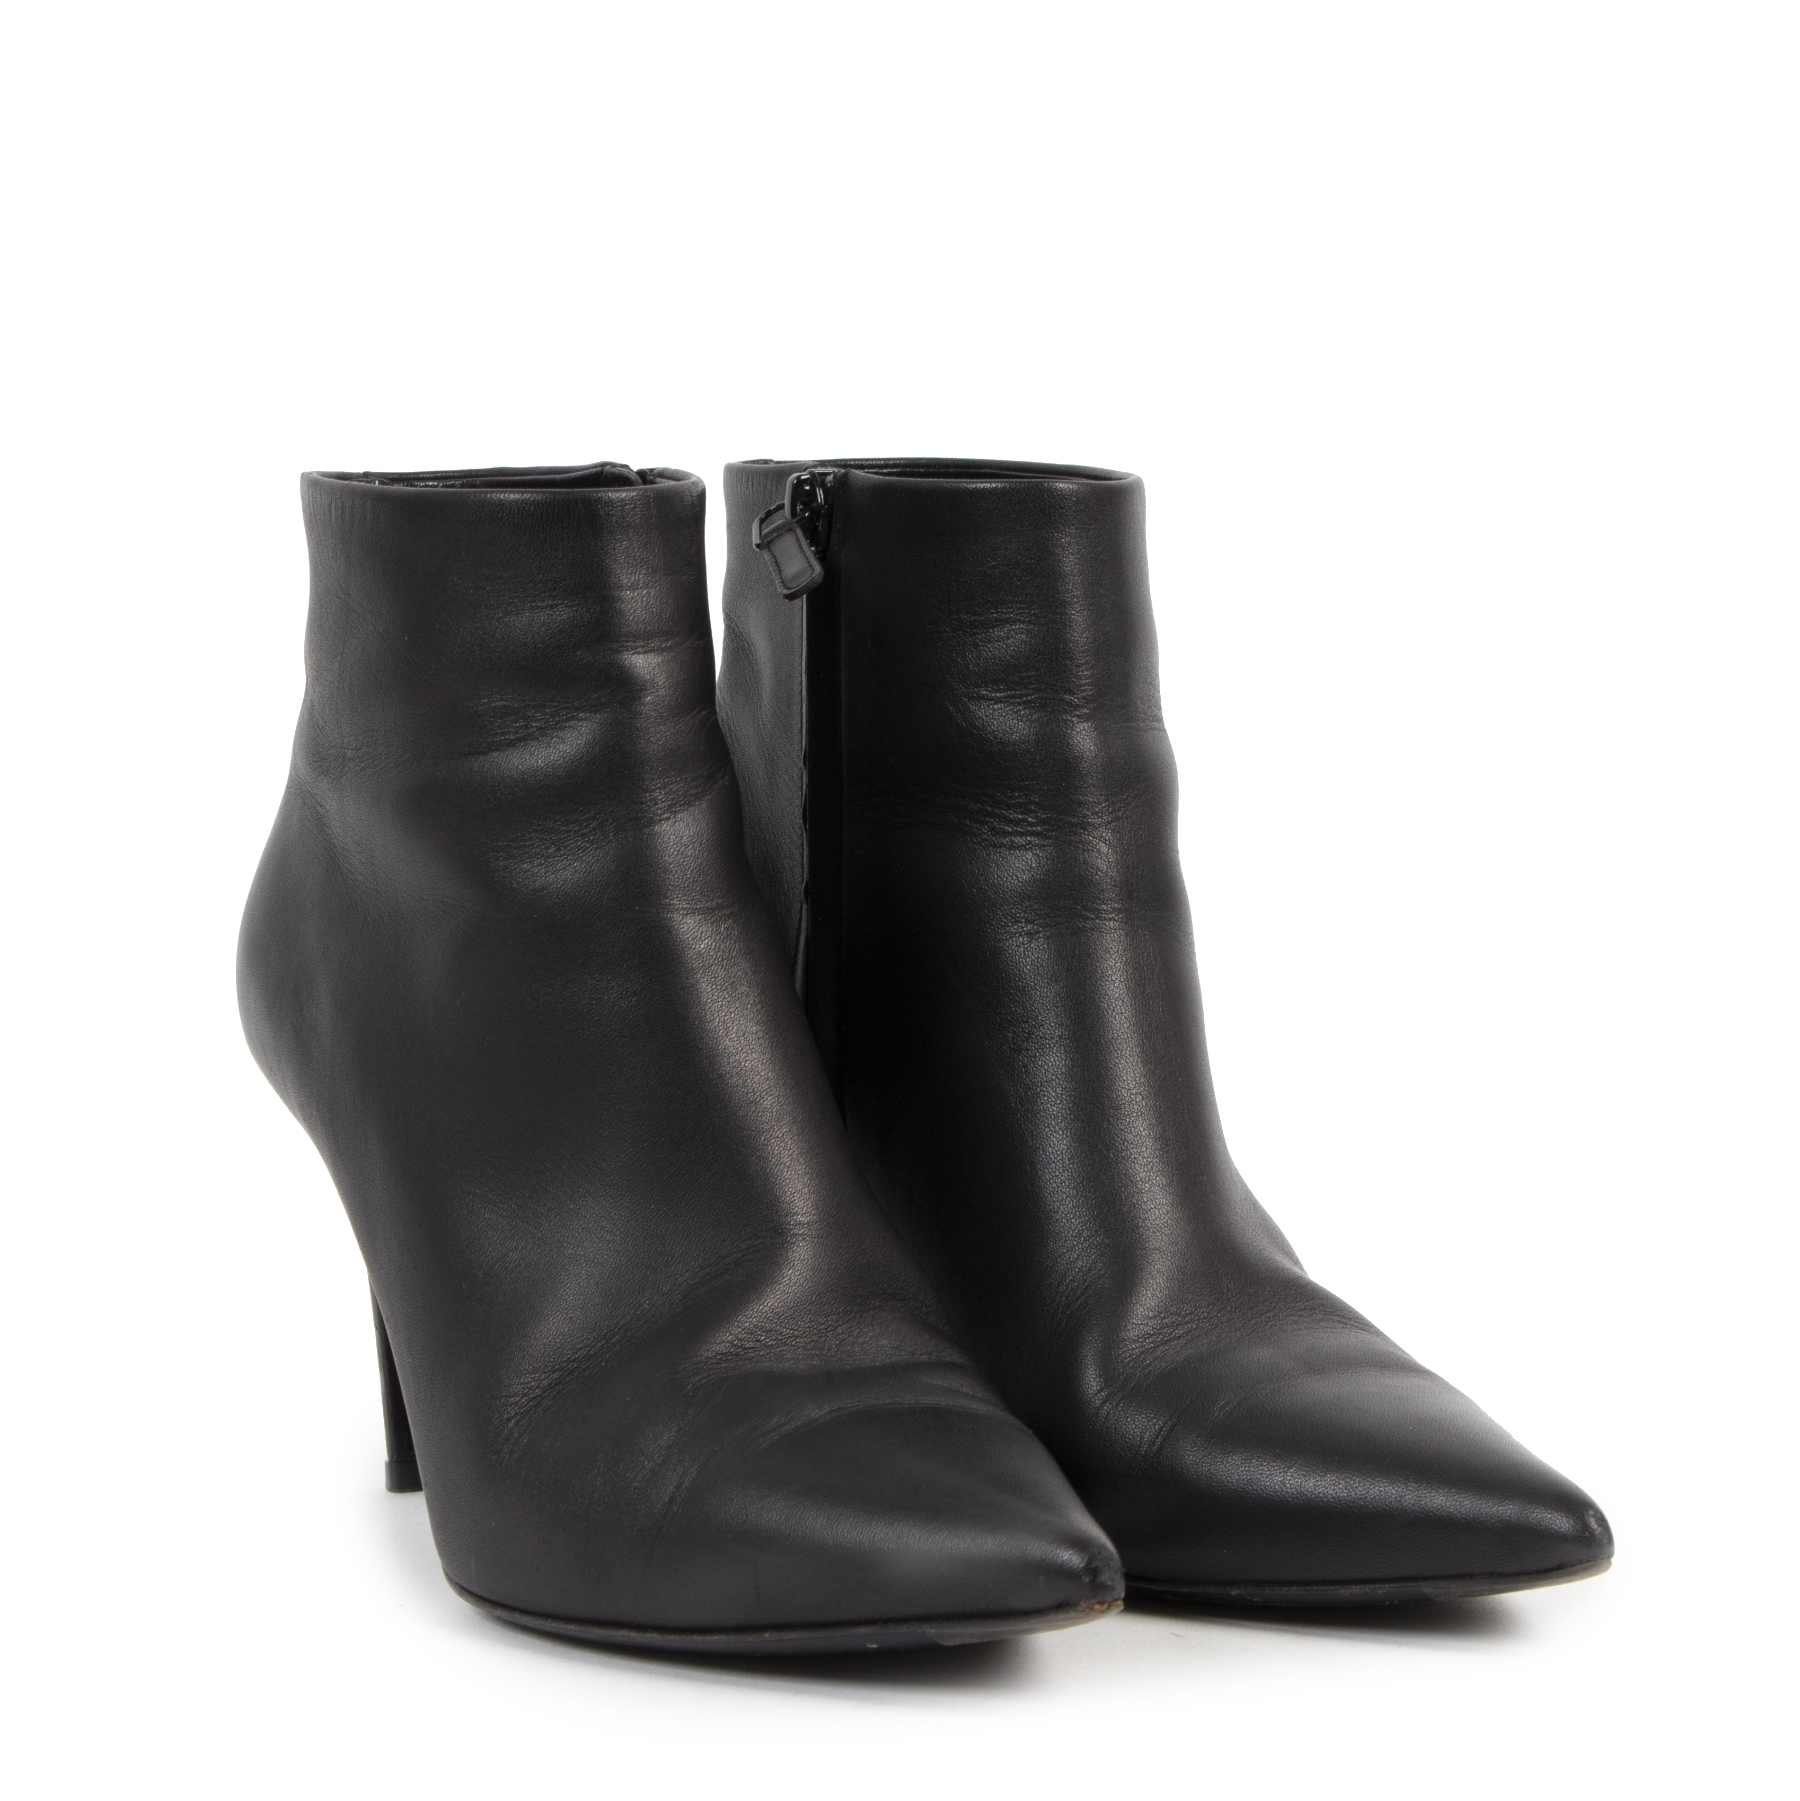 Authentique seconde-main vintage Balenciaga Black Leather Ankle Boots - Size 39,5 achète en ligne webshop LabelLOV